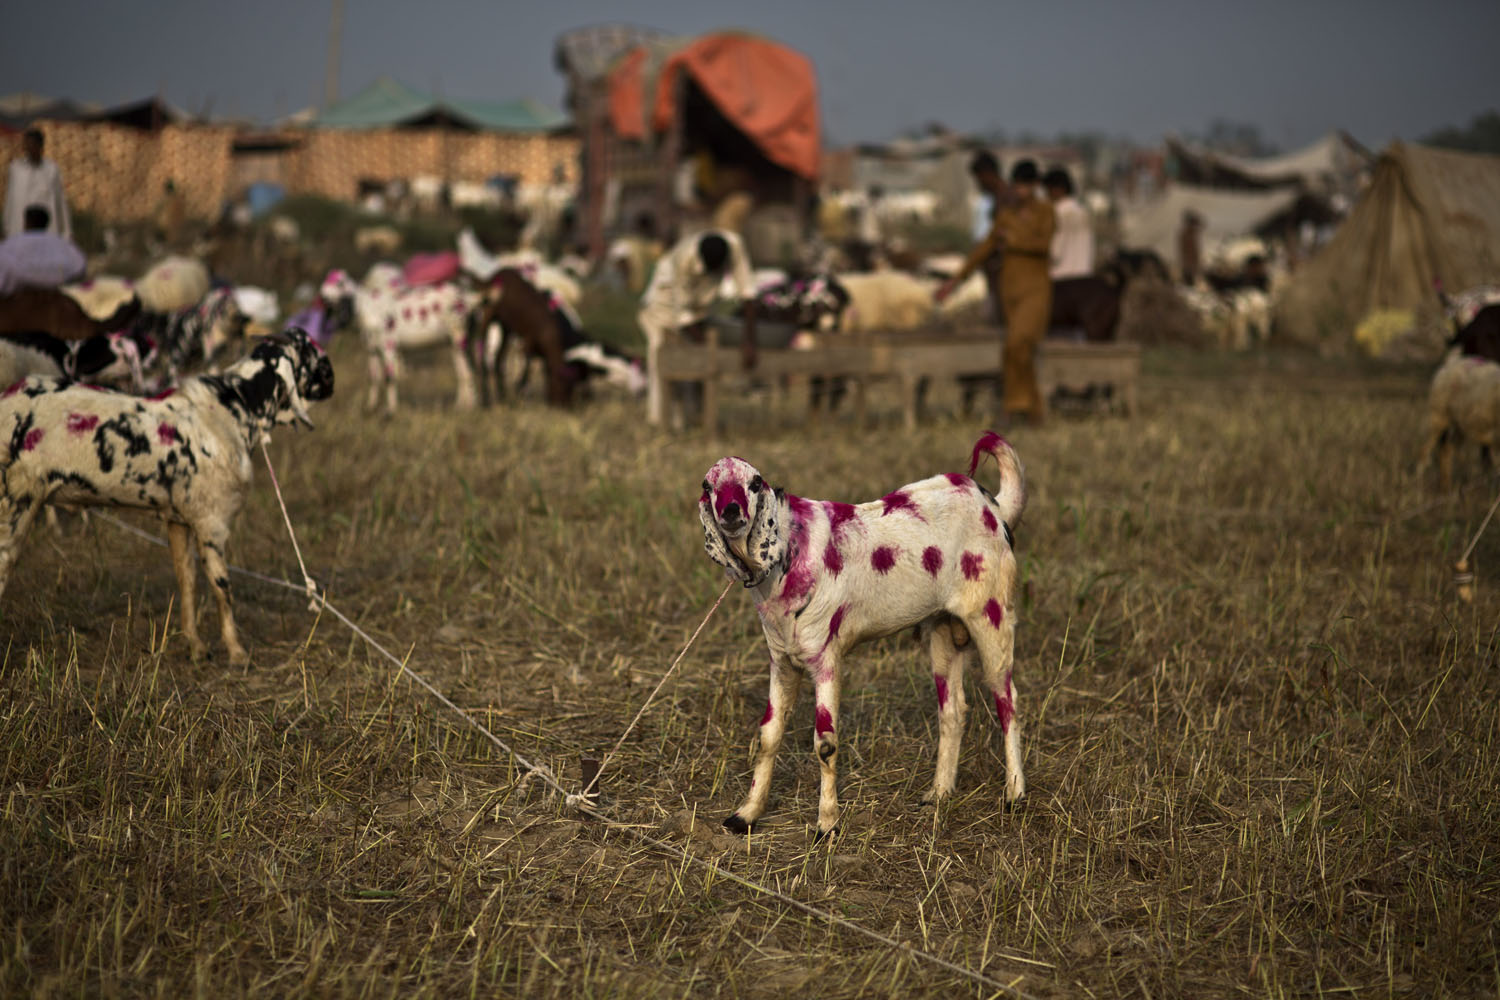 Oct. 10, 2013. A painted goat is displayed for sale at a market in preparation for the upcoming Muslim holiday of Eid al-Adha, or  Feast of Sacrifice,  on the outskirts of Islamabad, Pakistan.